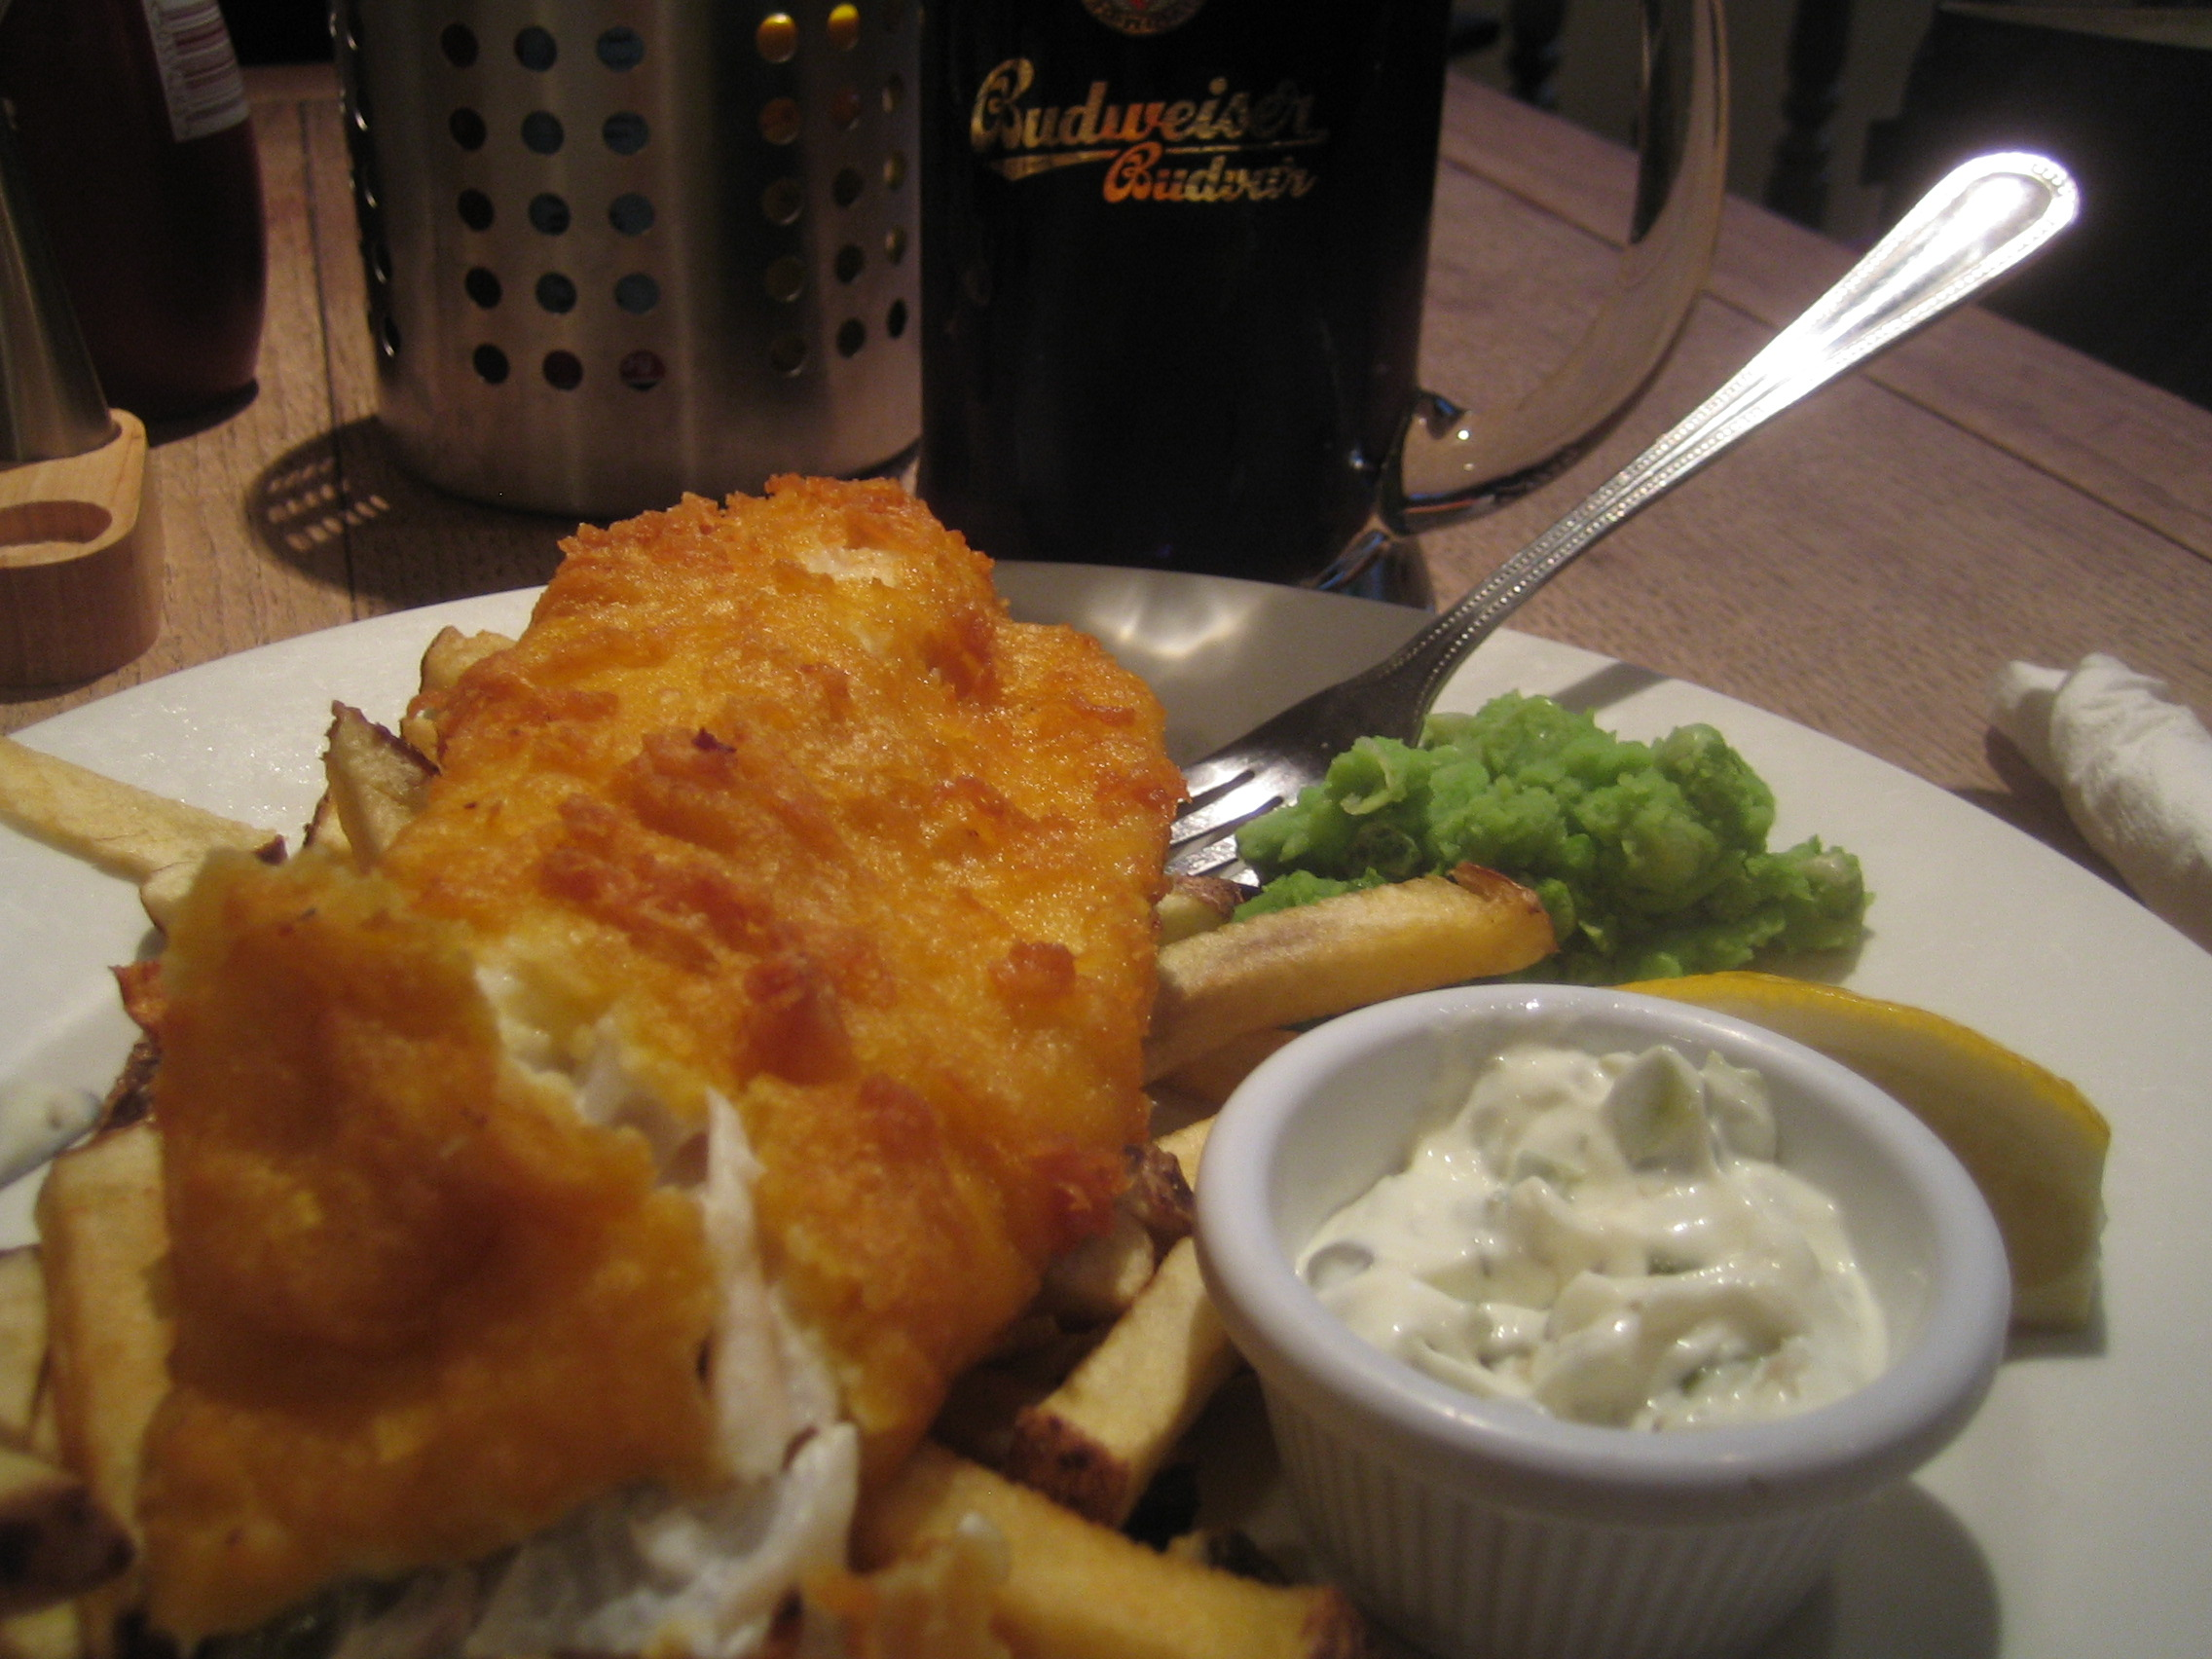 File:Beer Battered Fish and Chips.jpg - Wikimedia Commons